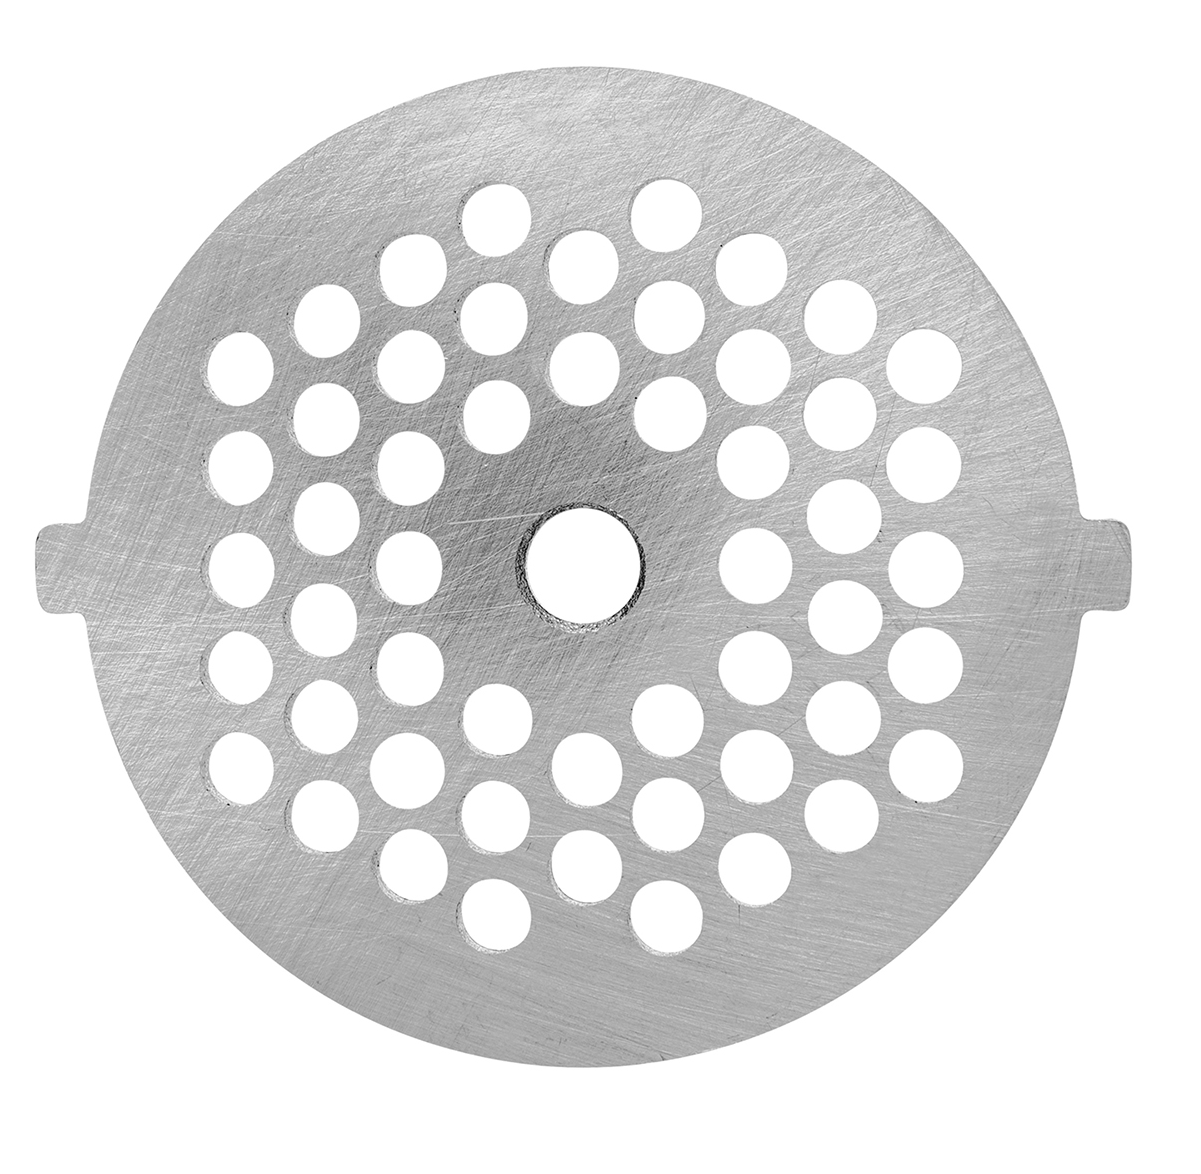 5mm Stainless Steel Cutting Plate for the Luvele Meat grinder